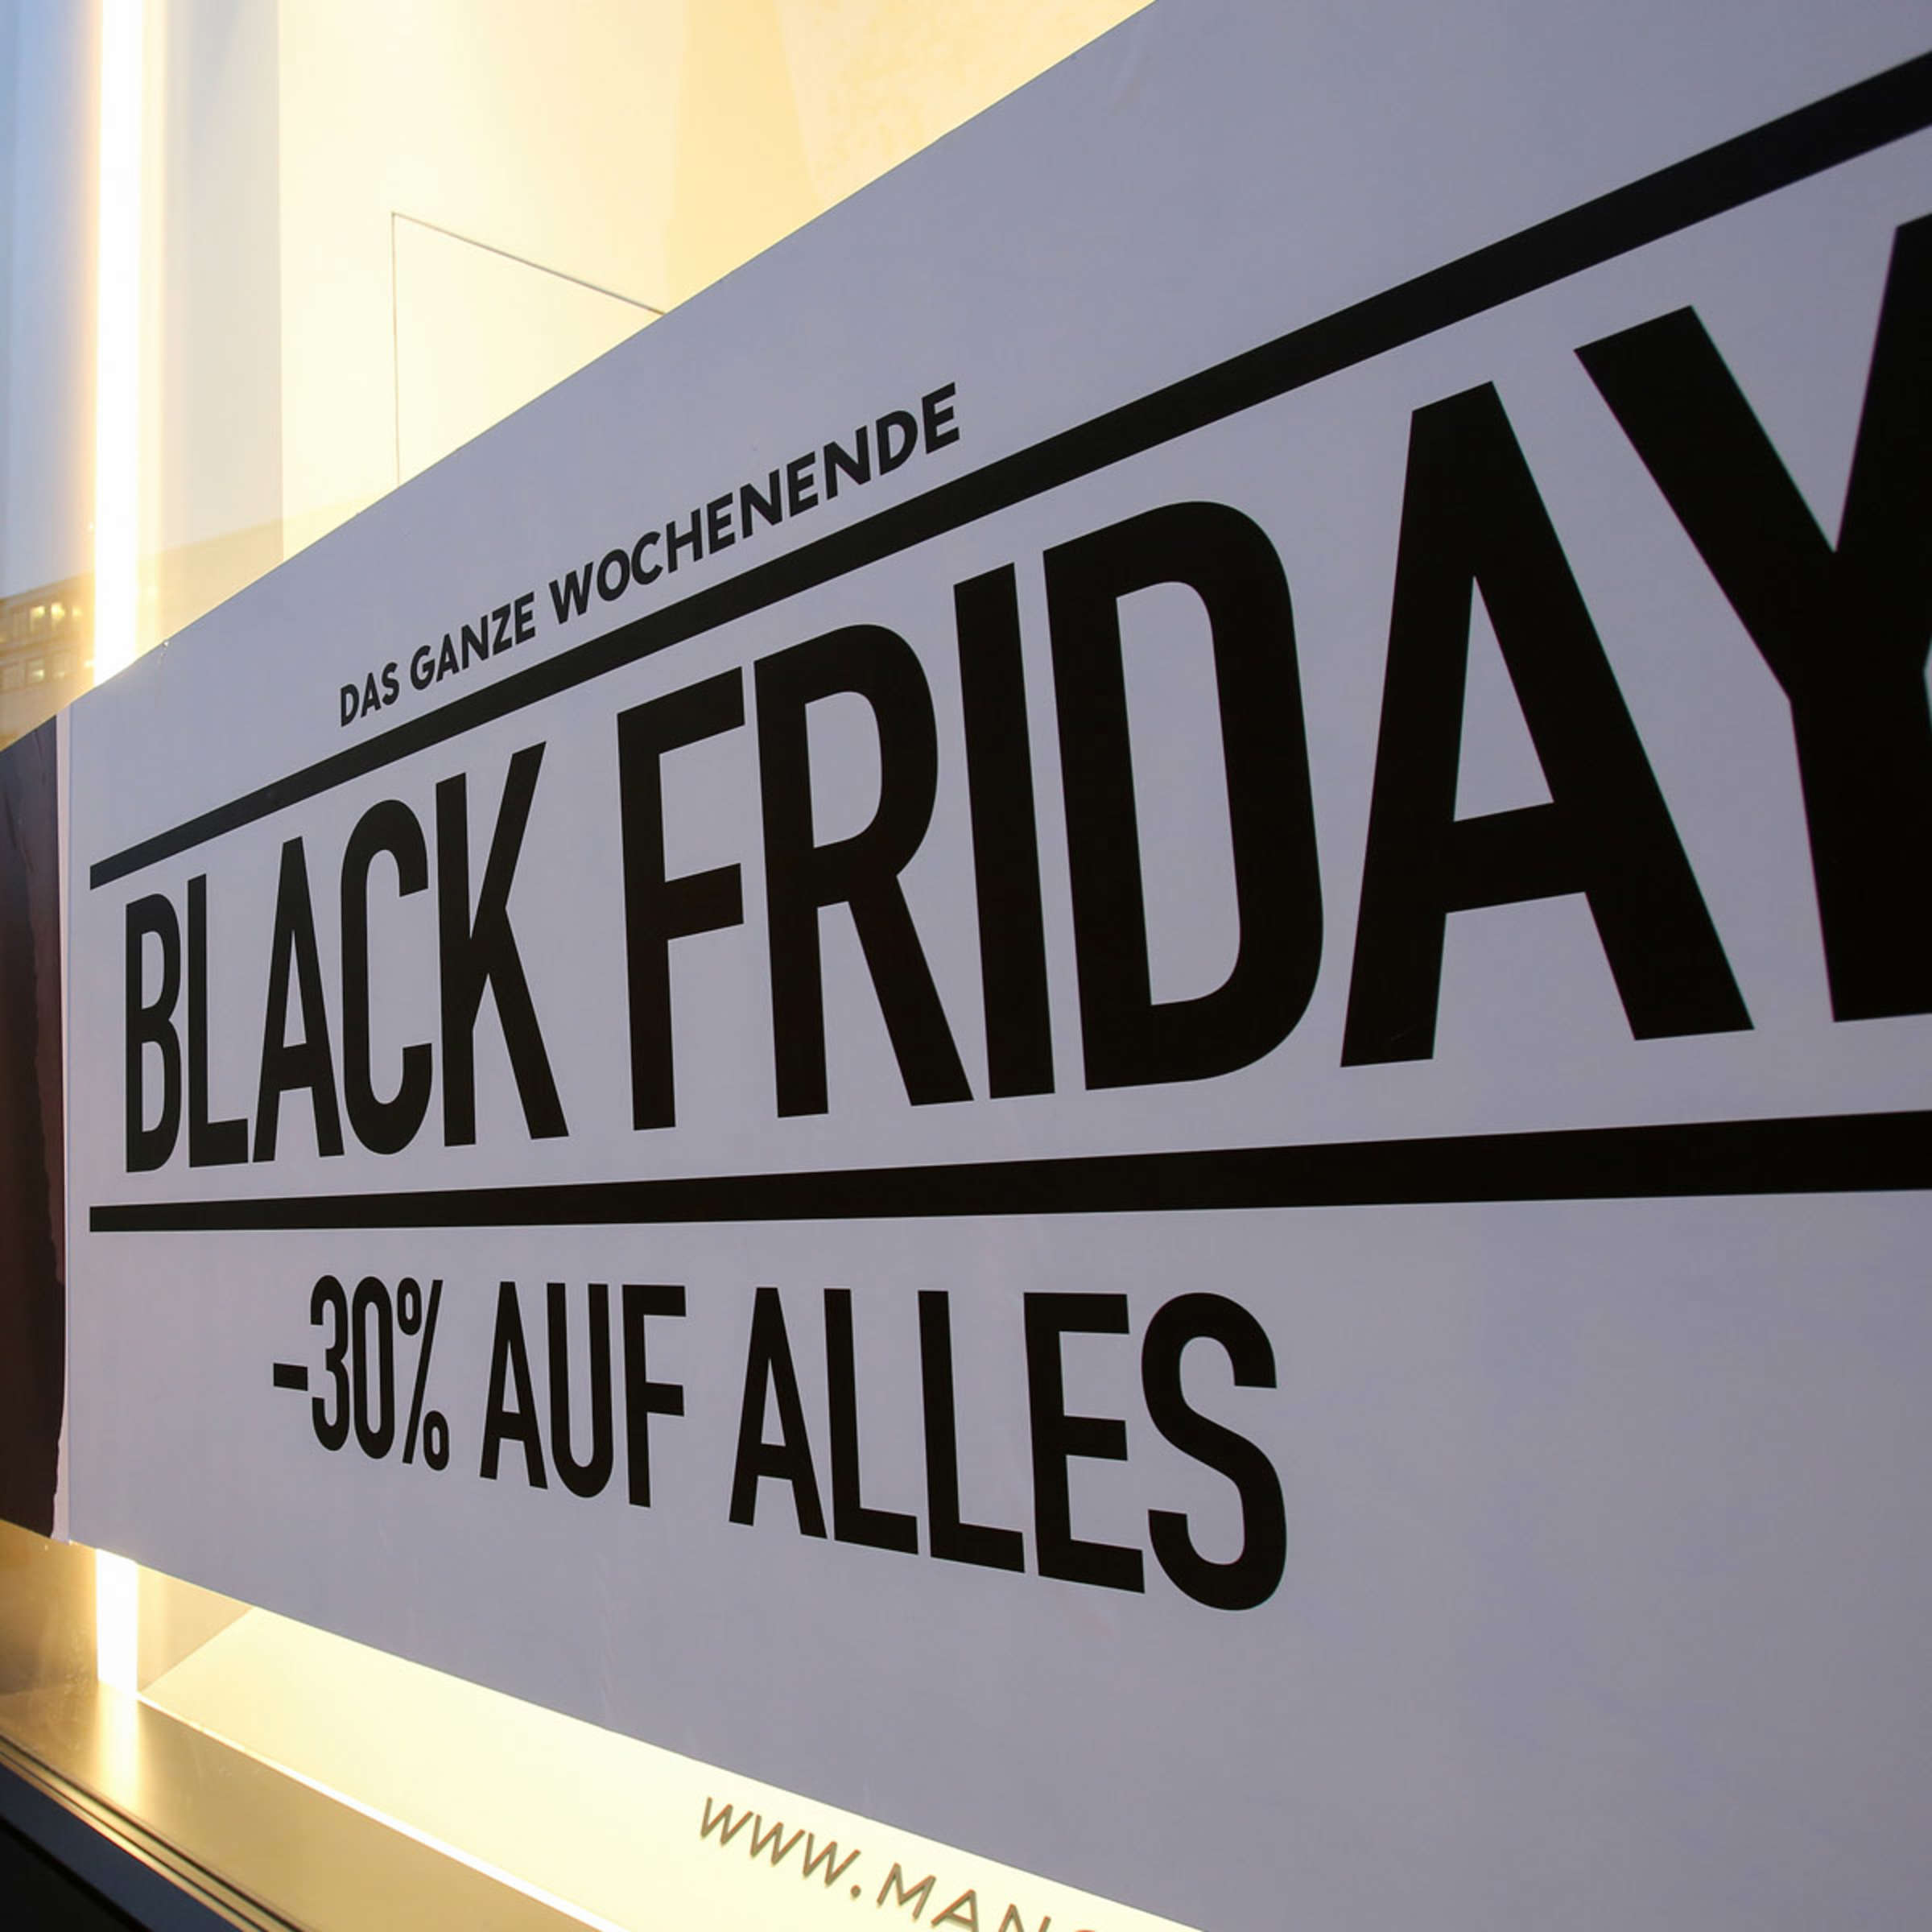 Black Friday 2020 Bei Amazon Was Taugen Die Angebote Von Amazon Geld